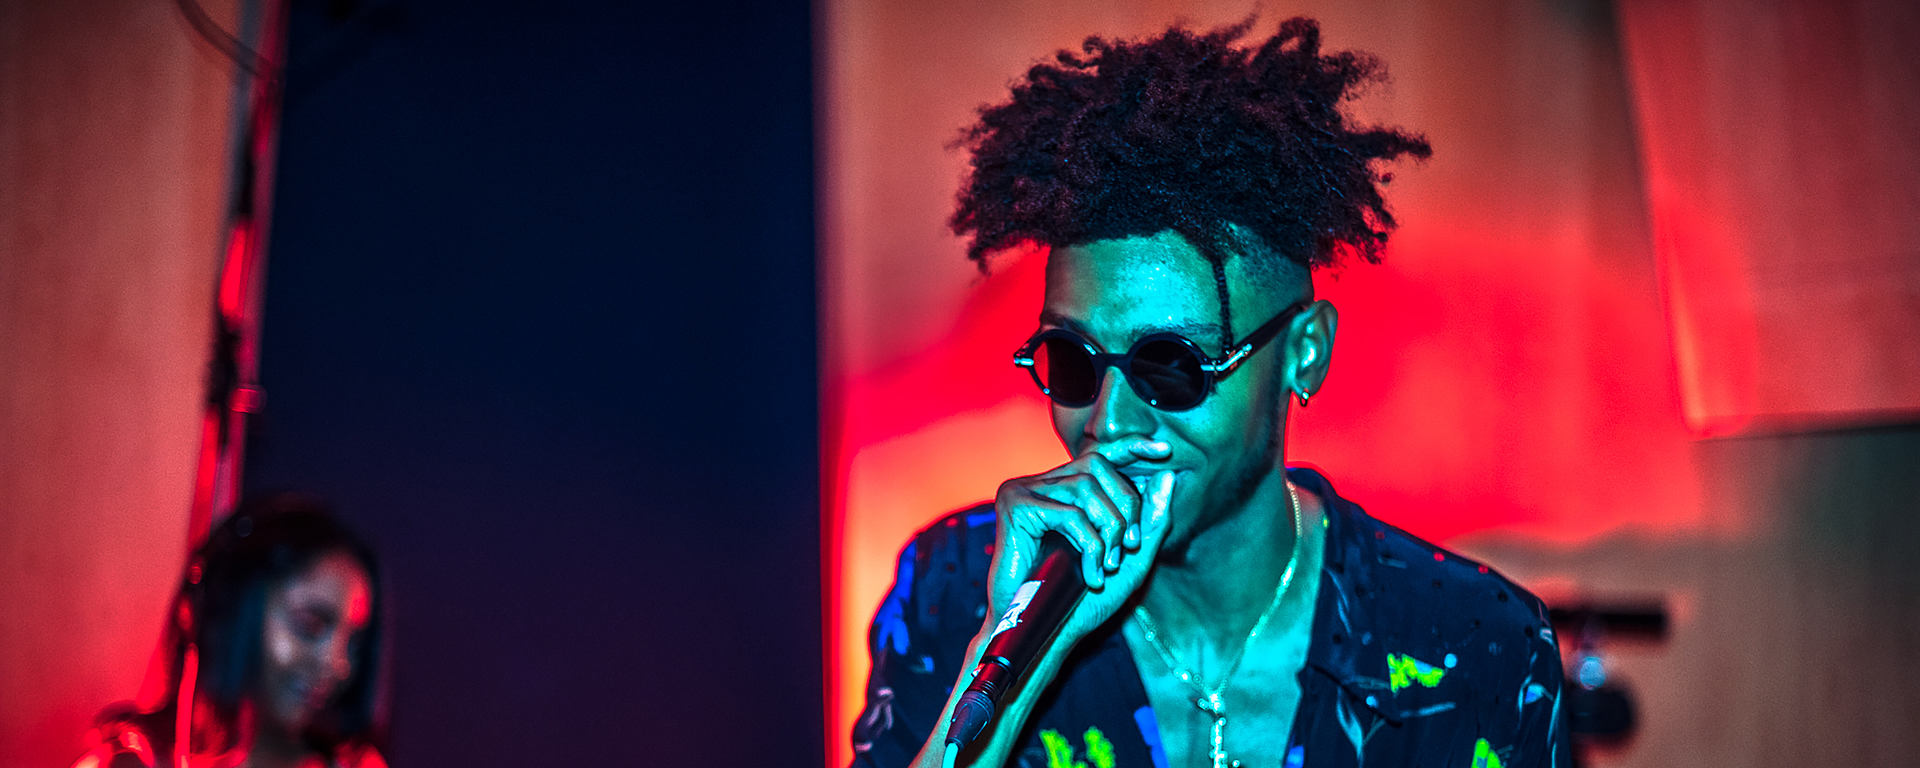 Masego live at Metropolis studios with the MTP 550 DM reference microphone